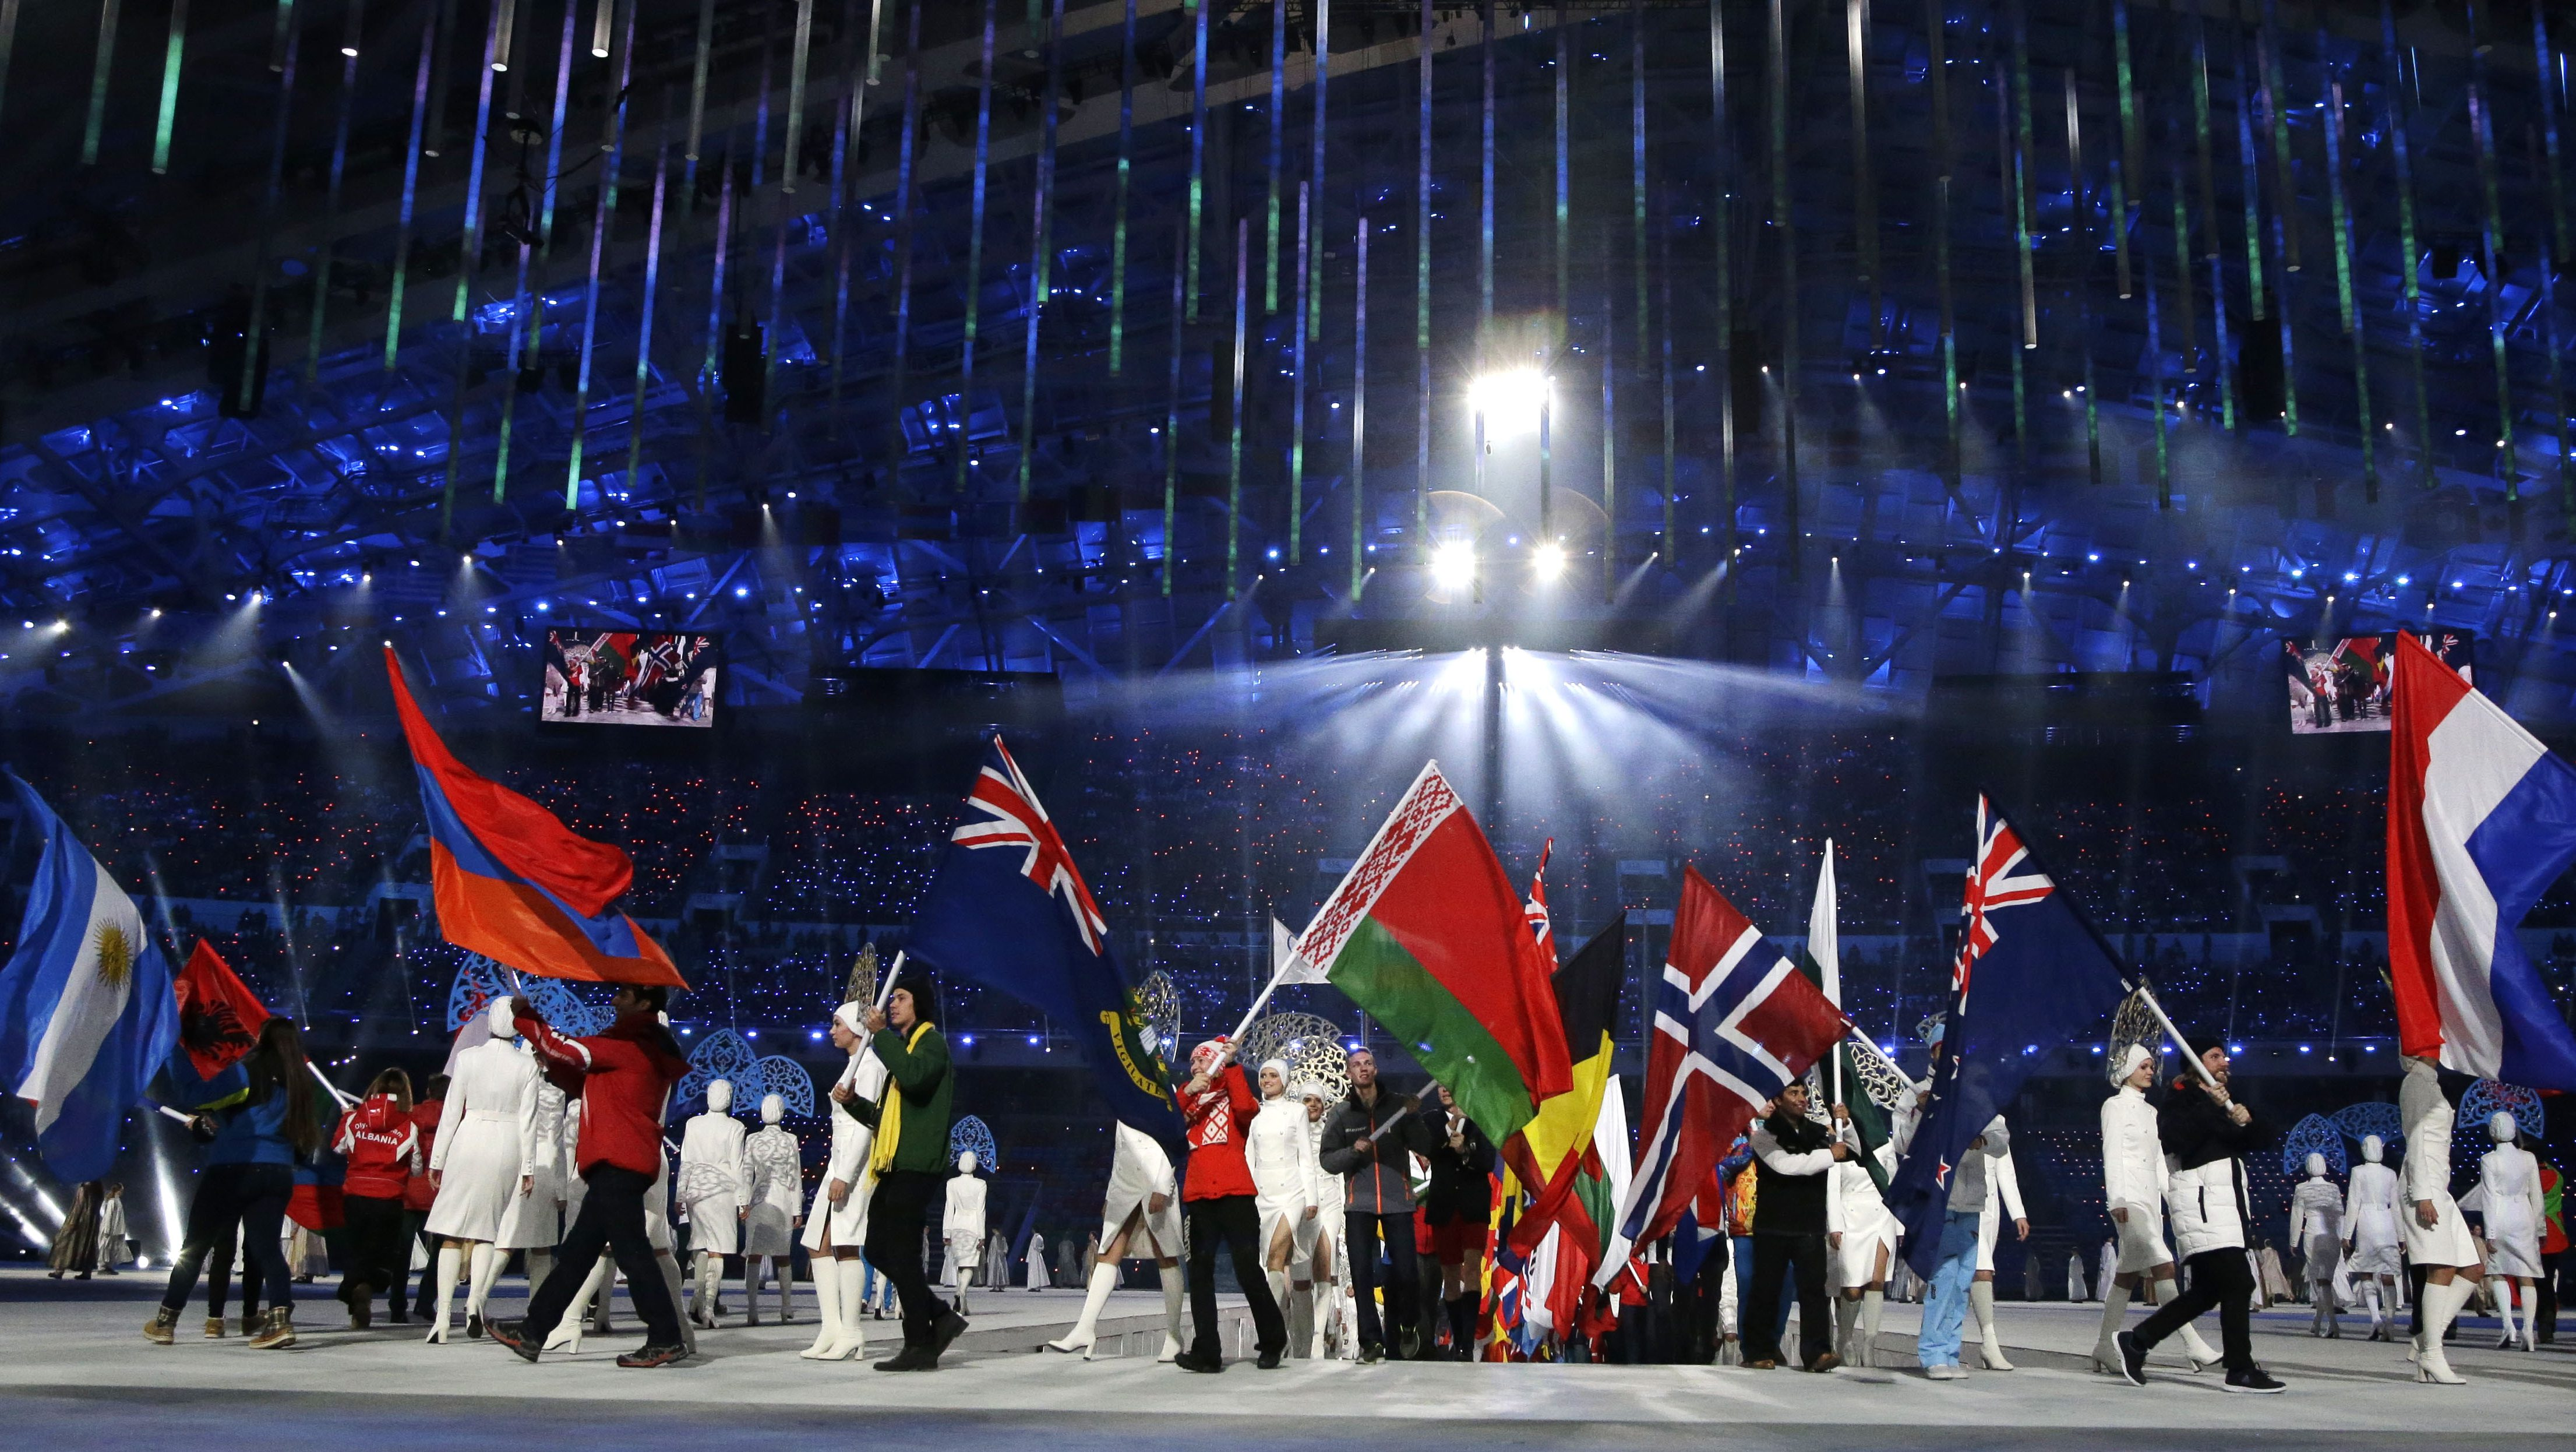 Athletes from various countries carry their national flags as they arrive during the closing ceremony of the 2014 Winter Olympics, Sunday, Feb. 23, 2014, in Sochi, Russia. (AP Photo/Darron Cummings)